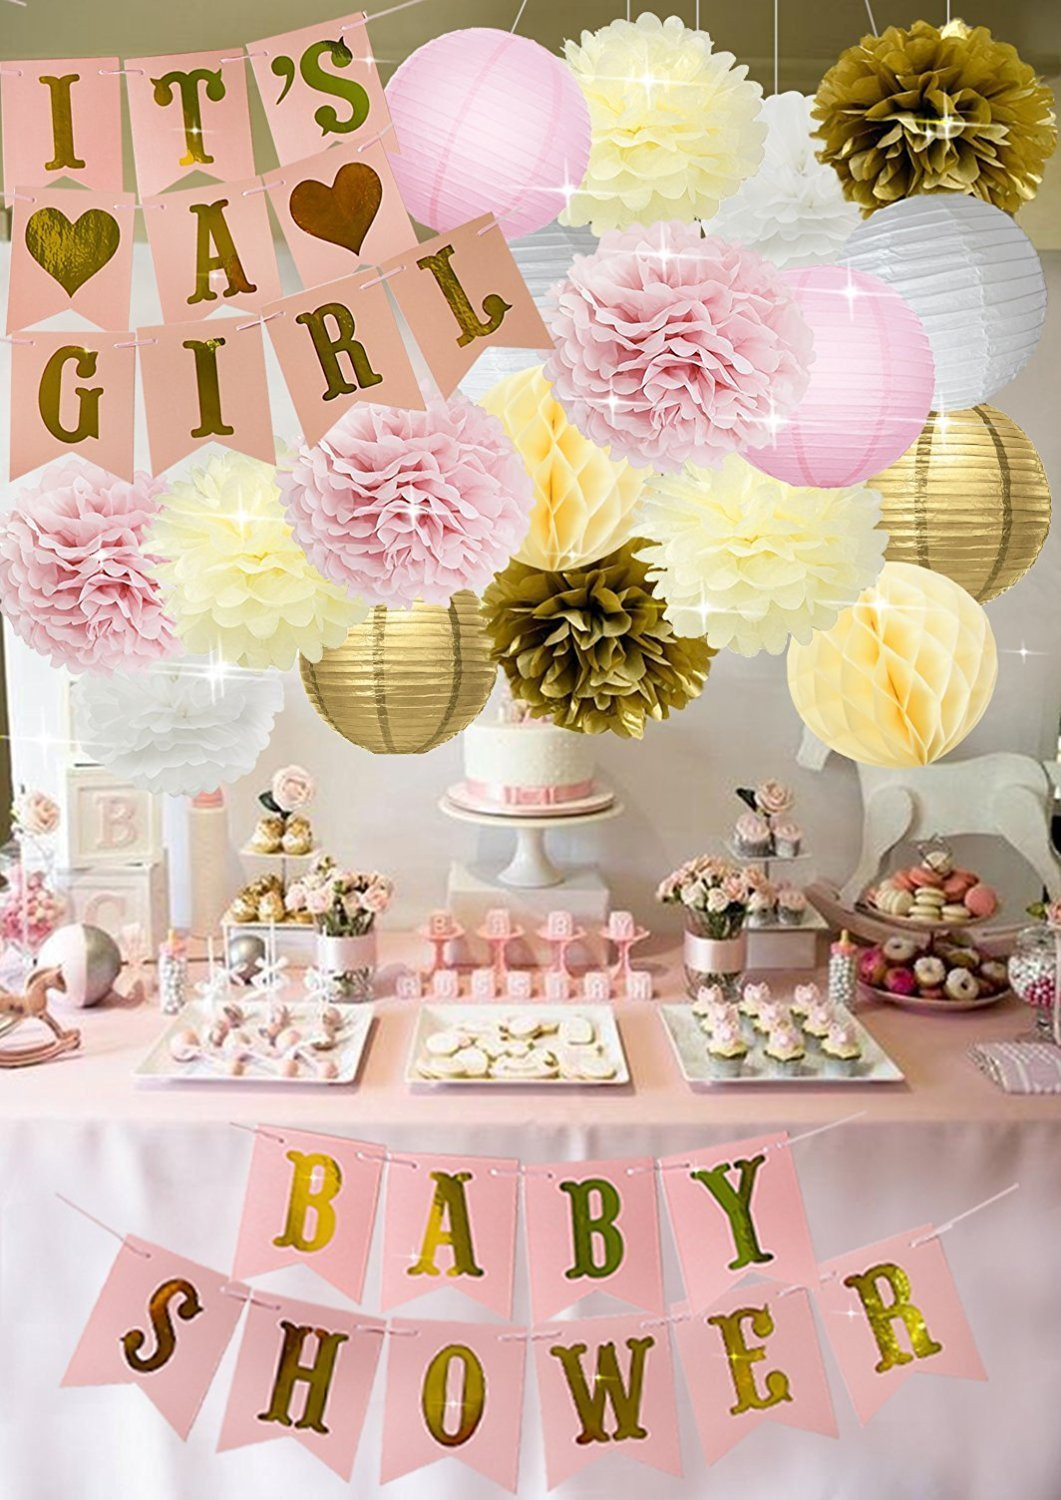 Baby Shower Decoration Ideas For A Girl  Baby Shower Decorations BABY SHOWER IT S A GIRL Garland